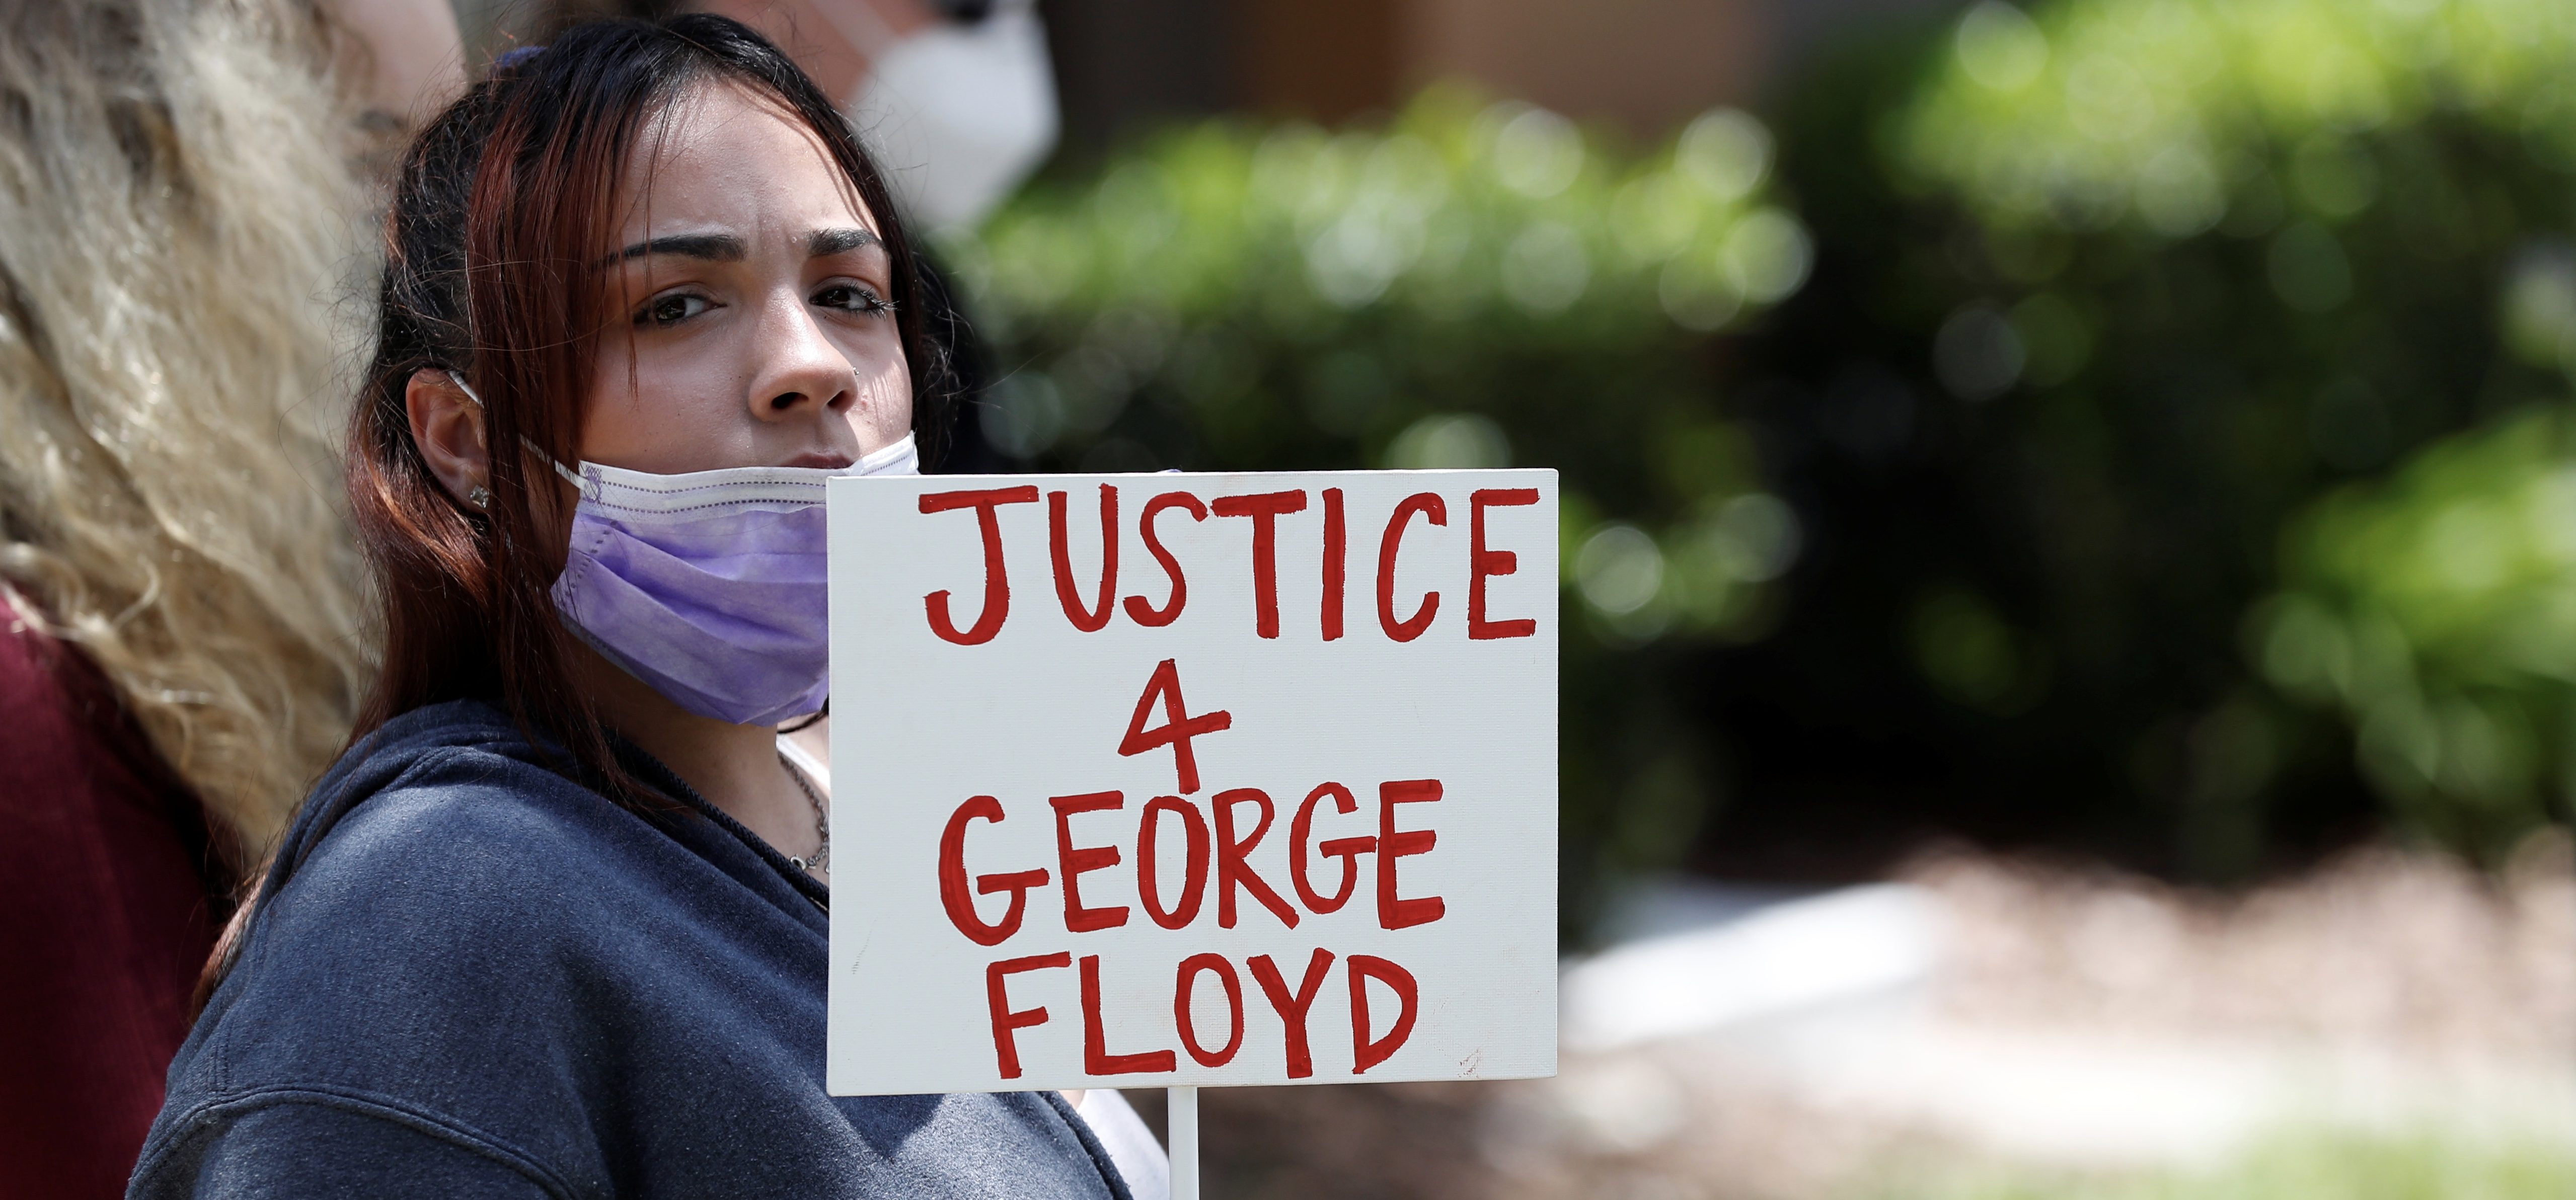 A protester holds a sign outside the Florida home of former Minneapolis police officer Derek Chauvin, who was recorded with his knee on the neck of African-American man George Floyd before his death, in the Windermere neighbourhood of Orlando, Florida, U.S. May 29, 2020. REUTERS/Scott Audette